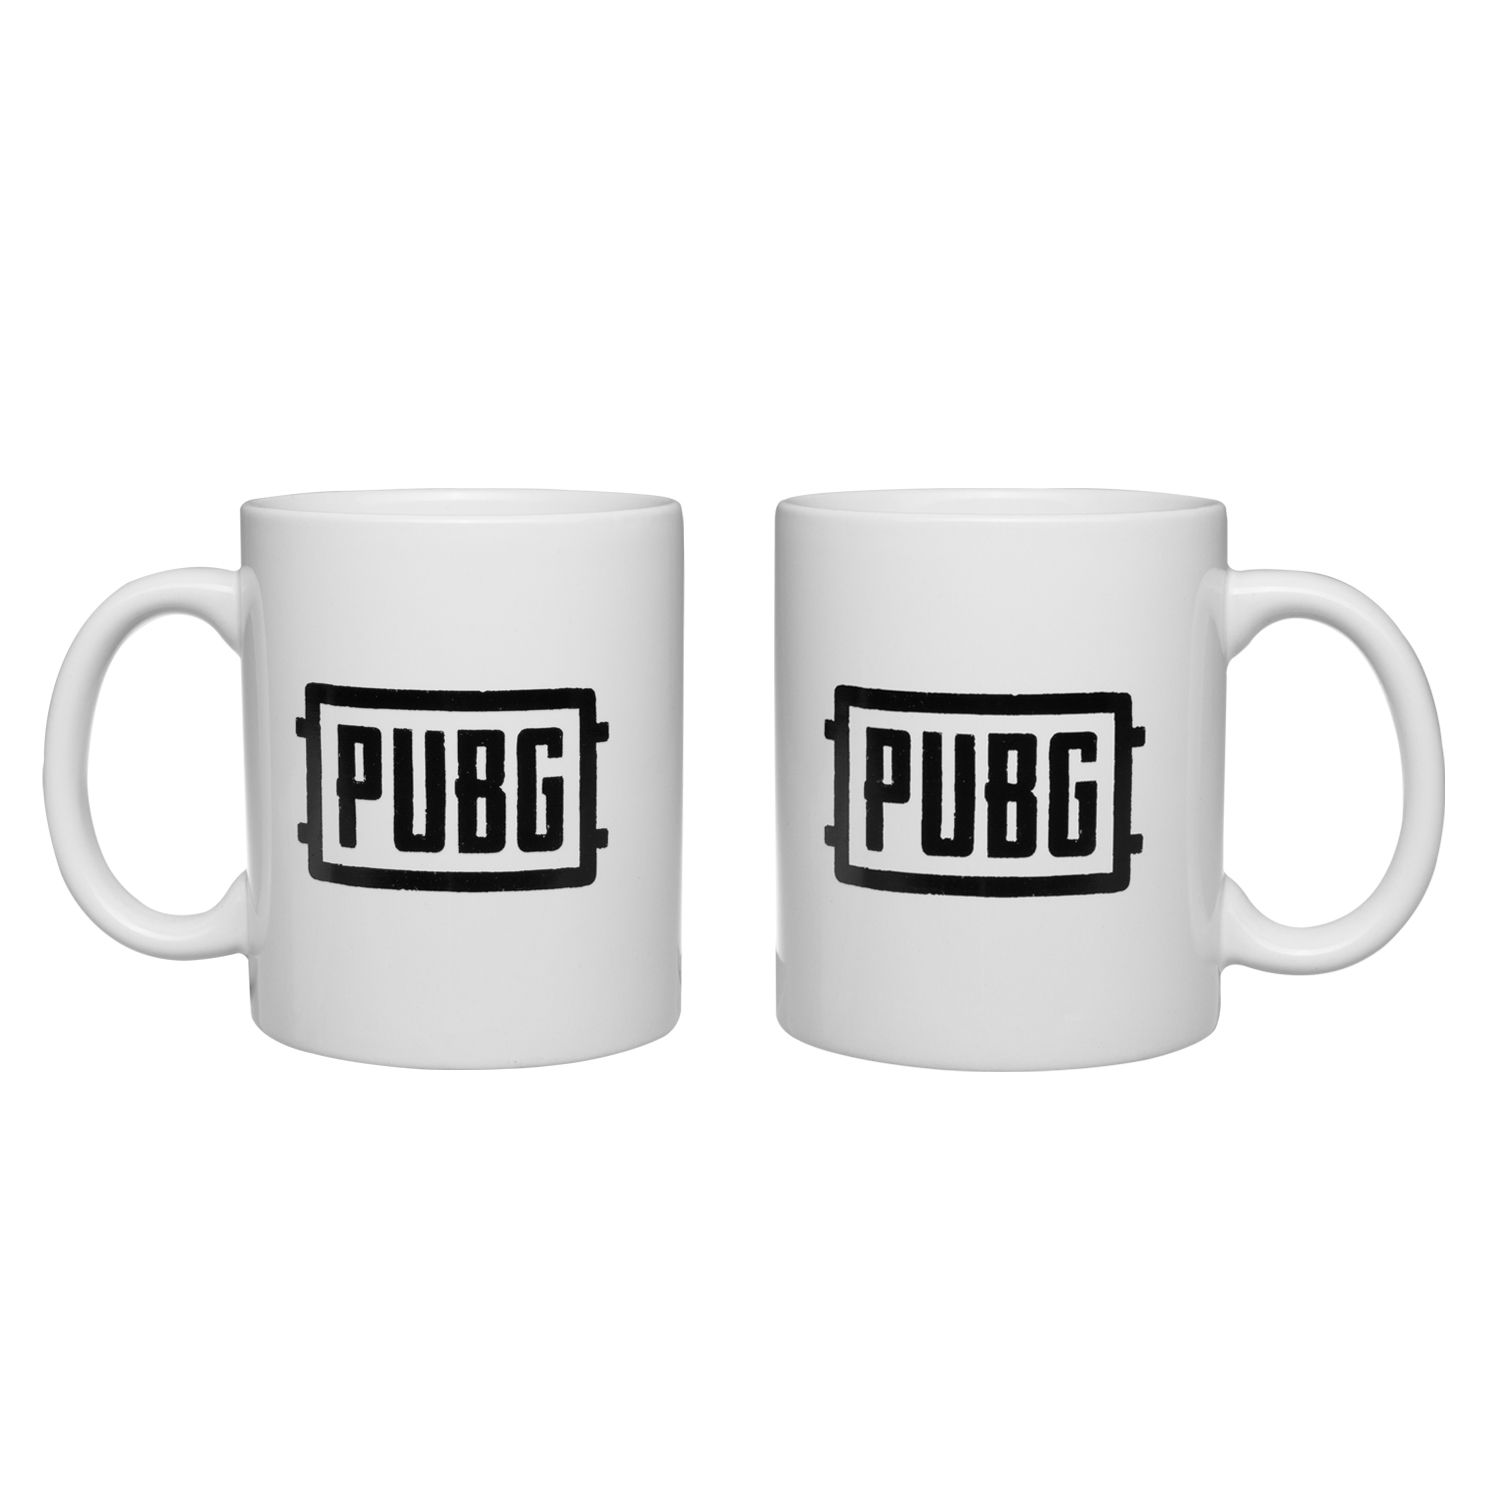 Mug PUBG (PlayerUnknown\'s BattleGrounds)